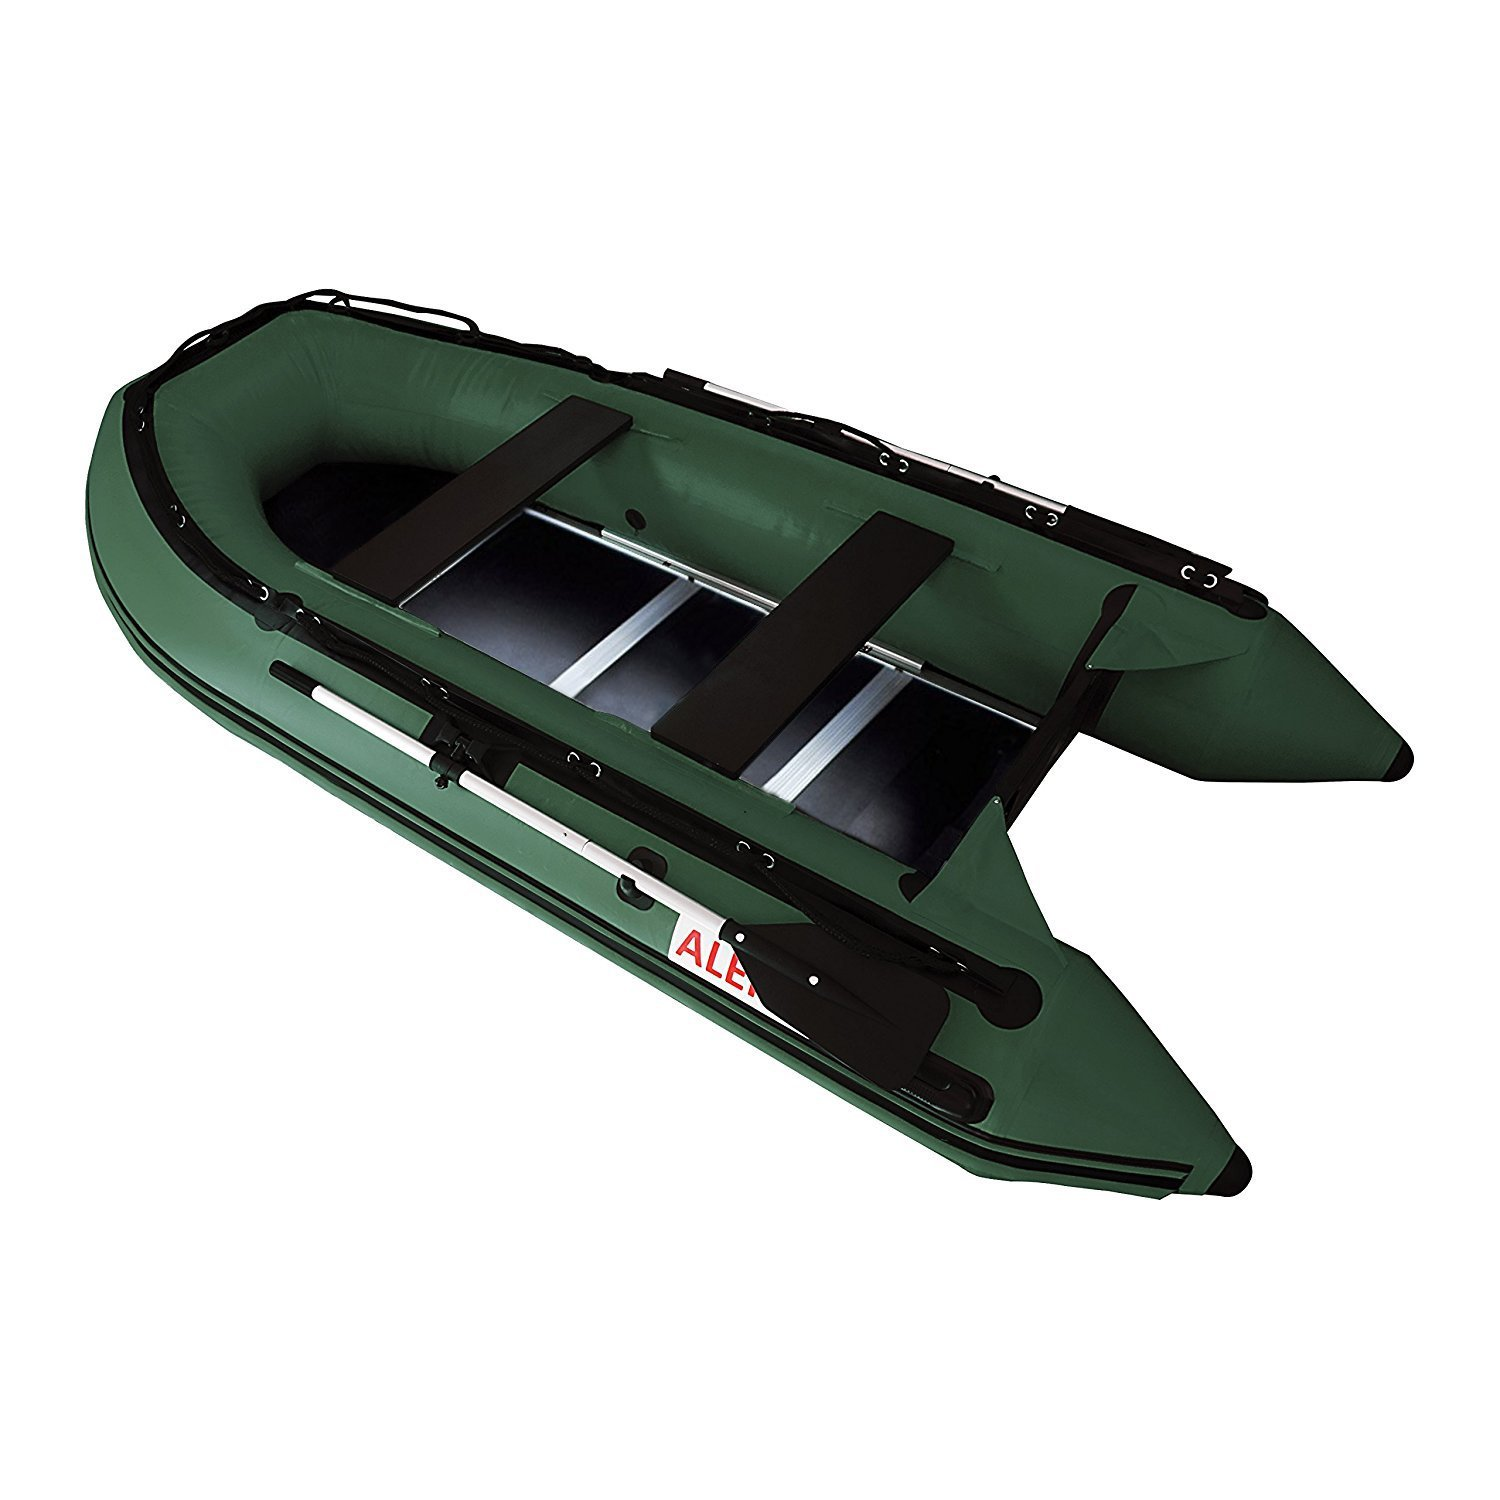 BTSDWD320GR 10.5 Foot Inflatable Boat with Pre-Installed Wood Deck